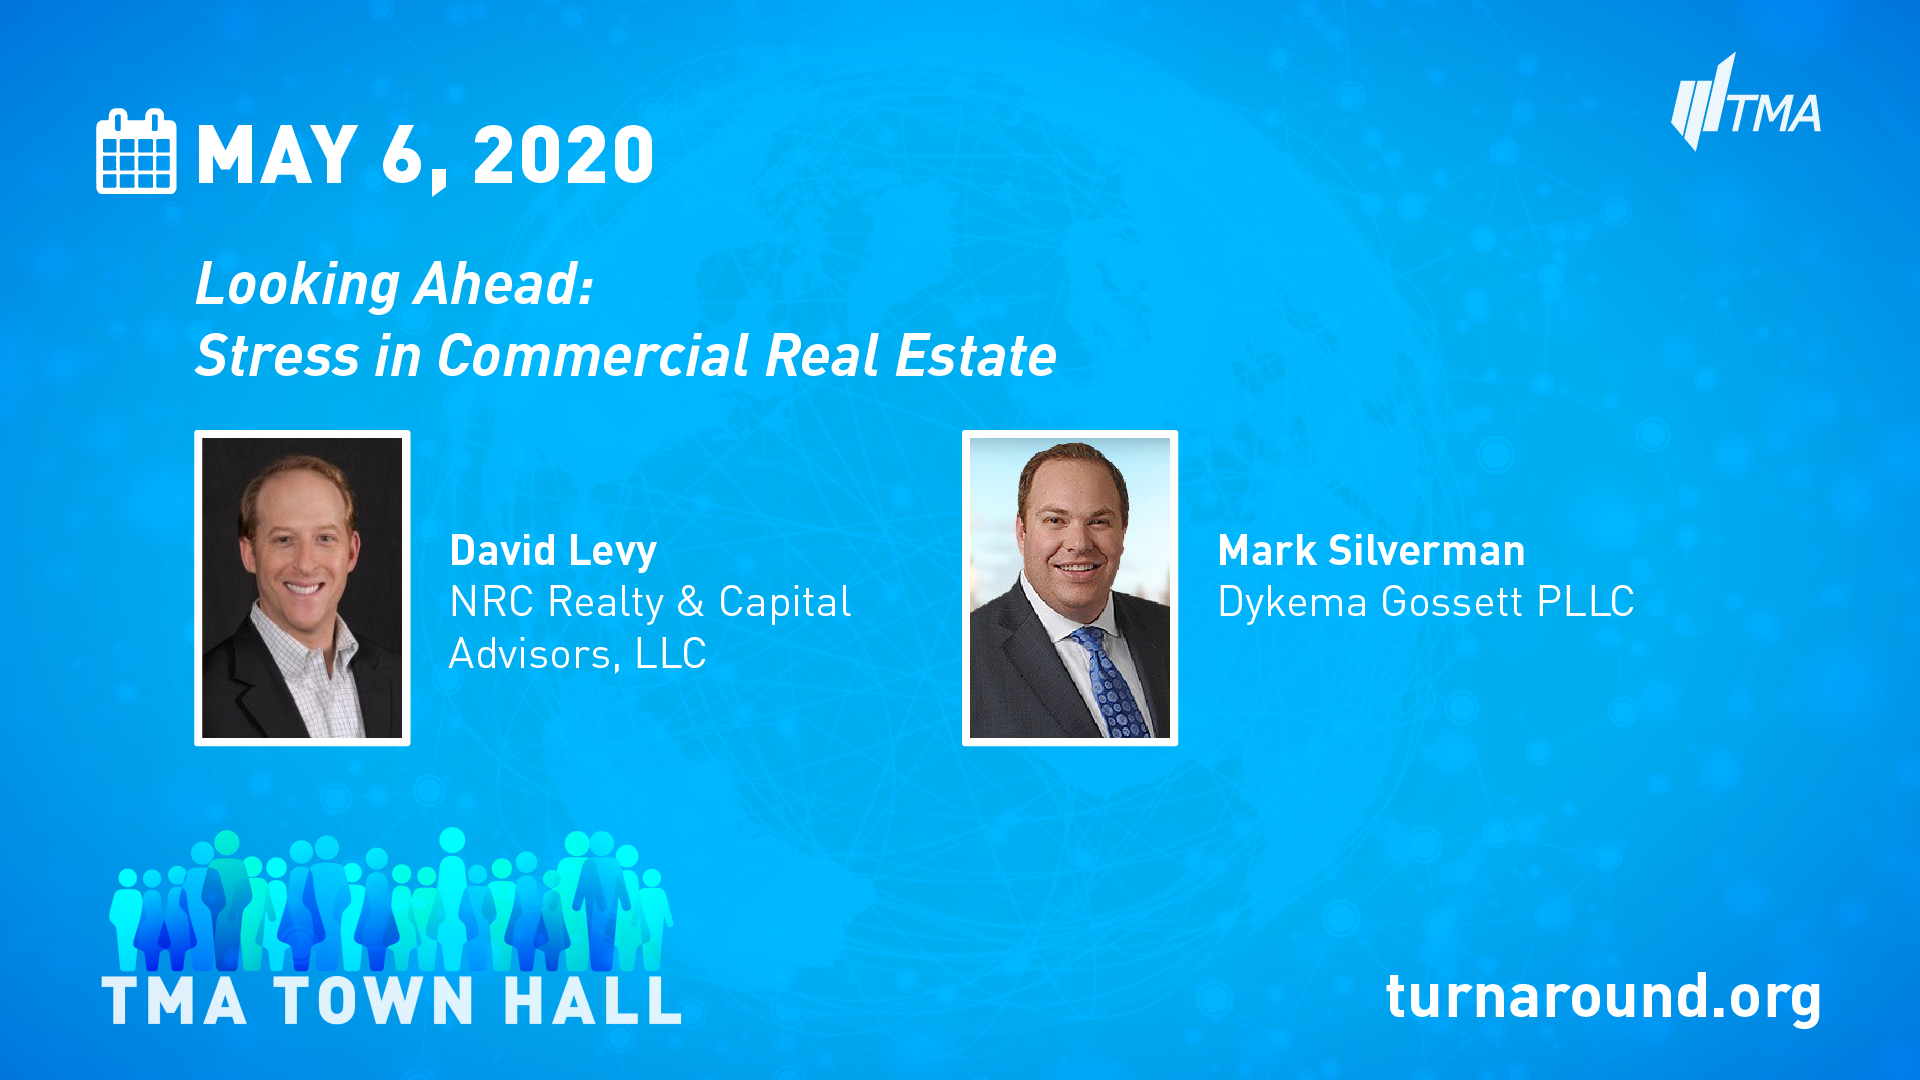 TMA Town Hall for May 6, 2020